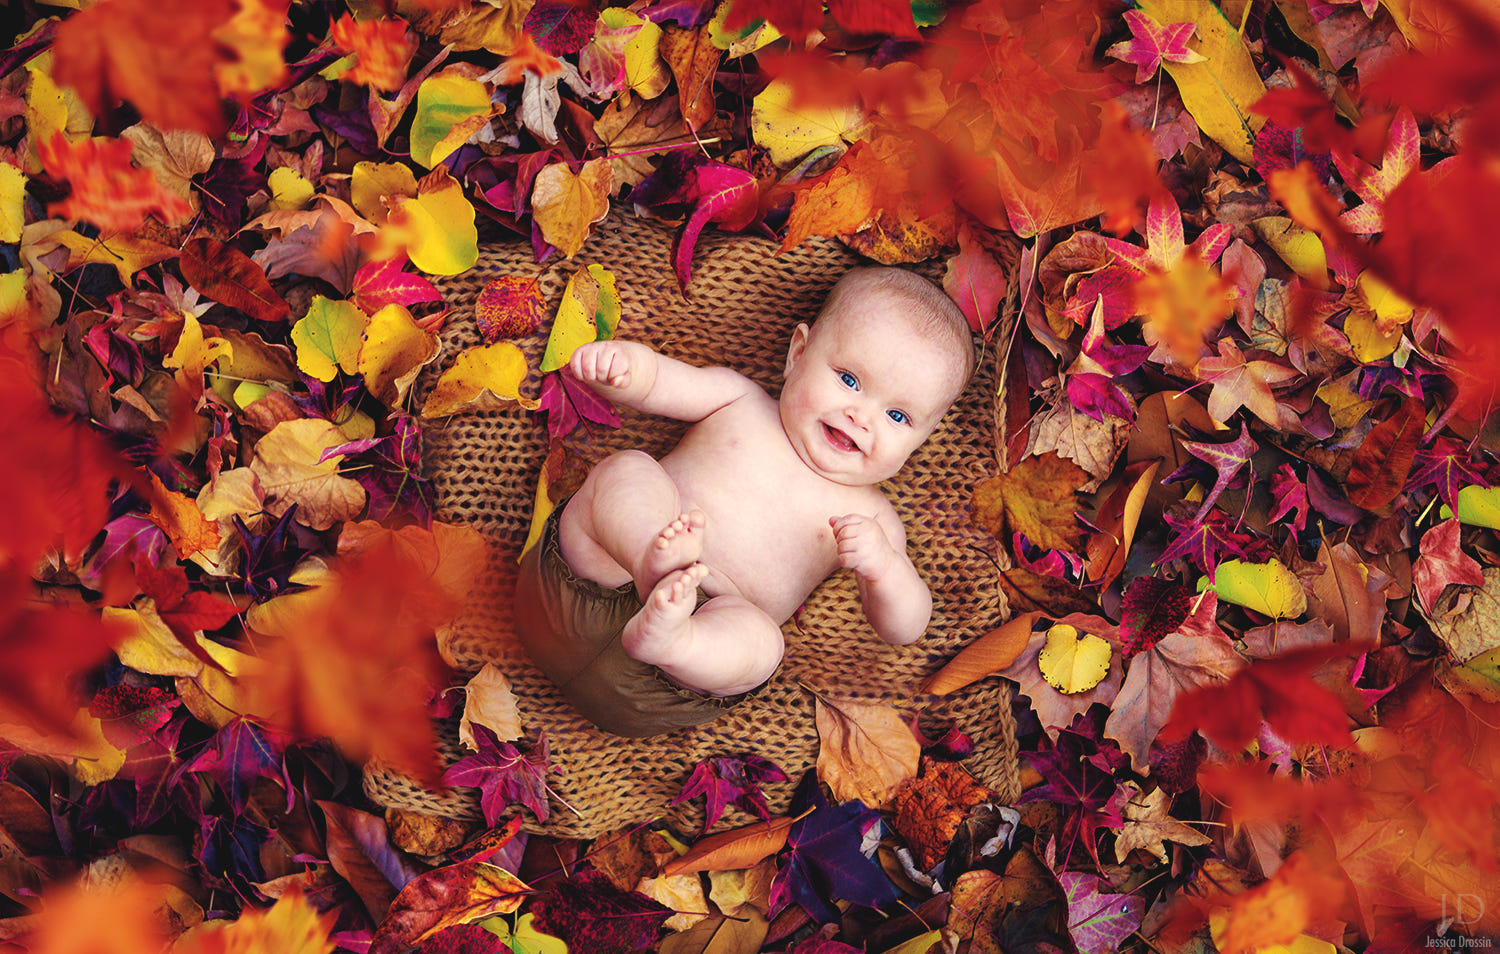 baby portrait photography ideas by jessica drossin